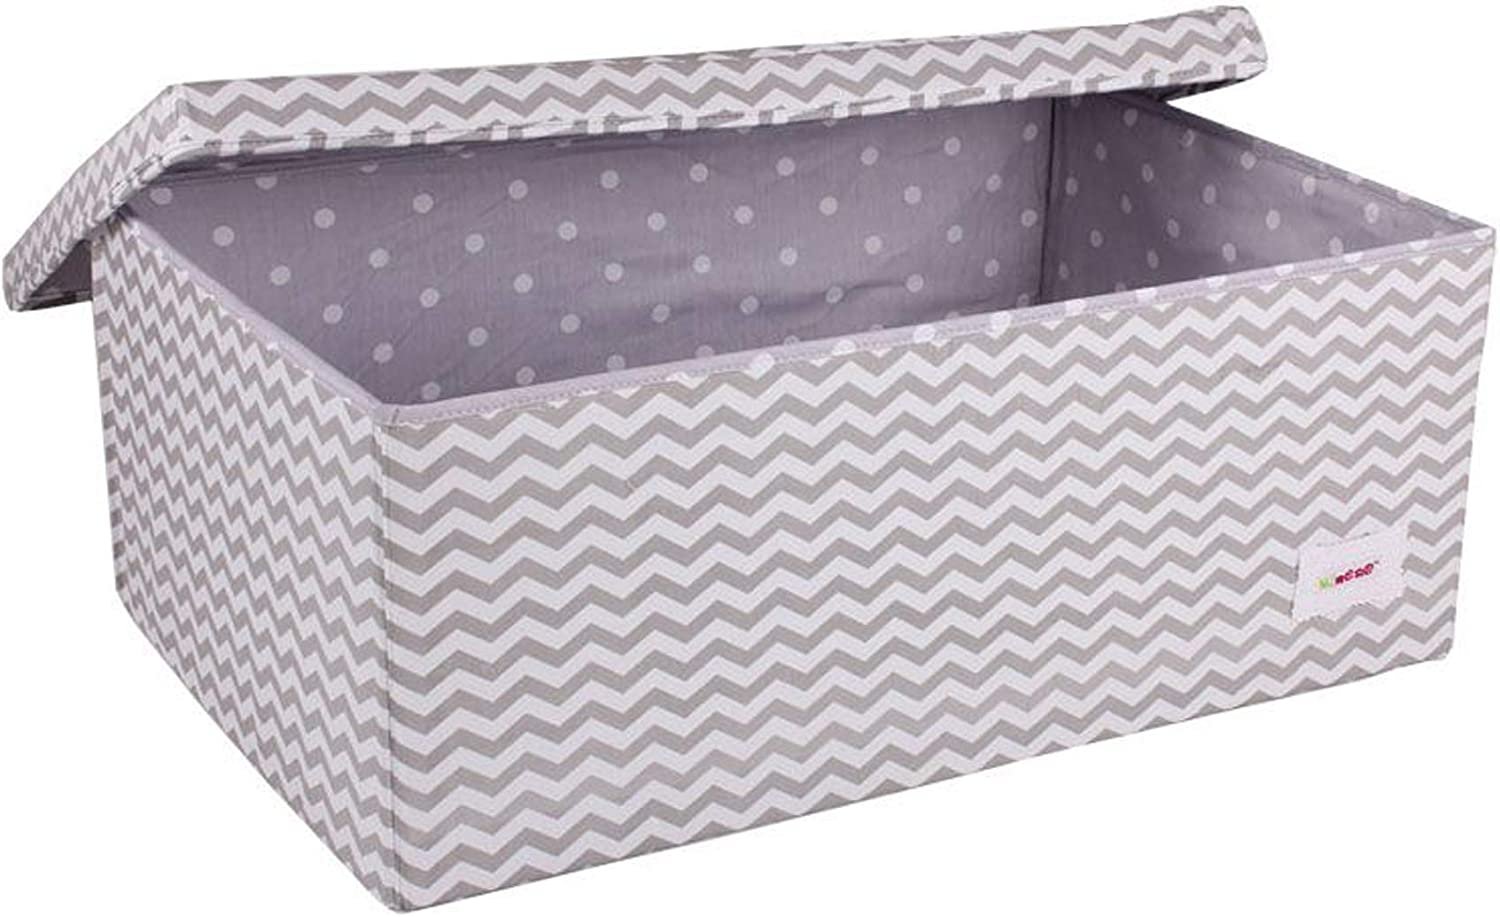 Cotton Storage Box with Lid – Award Winning Large Collapsible Portable Wipe Clean Box, 60 * 40 * 25, Baby Nursery Organiser for Storage, Kid Storage, Blankets, Clothes, Towels, Toys(Grey Chevron)